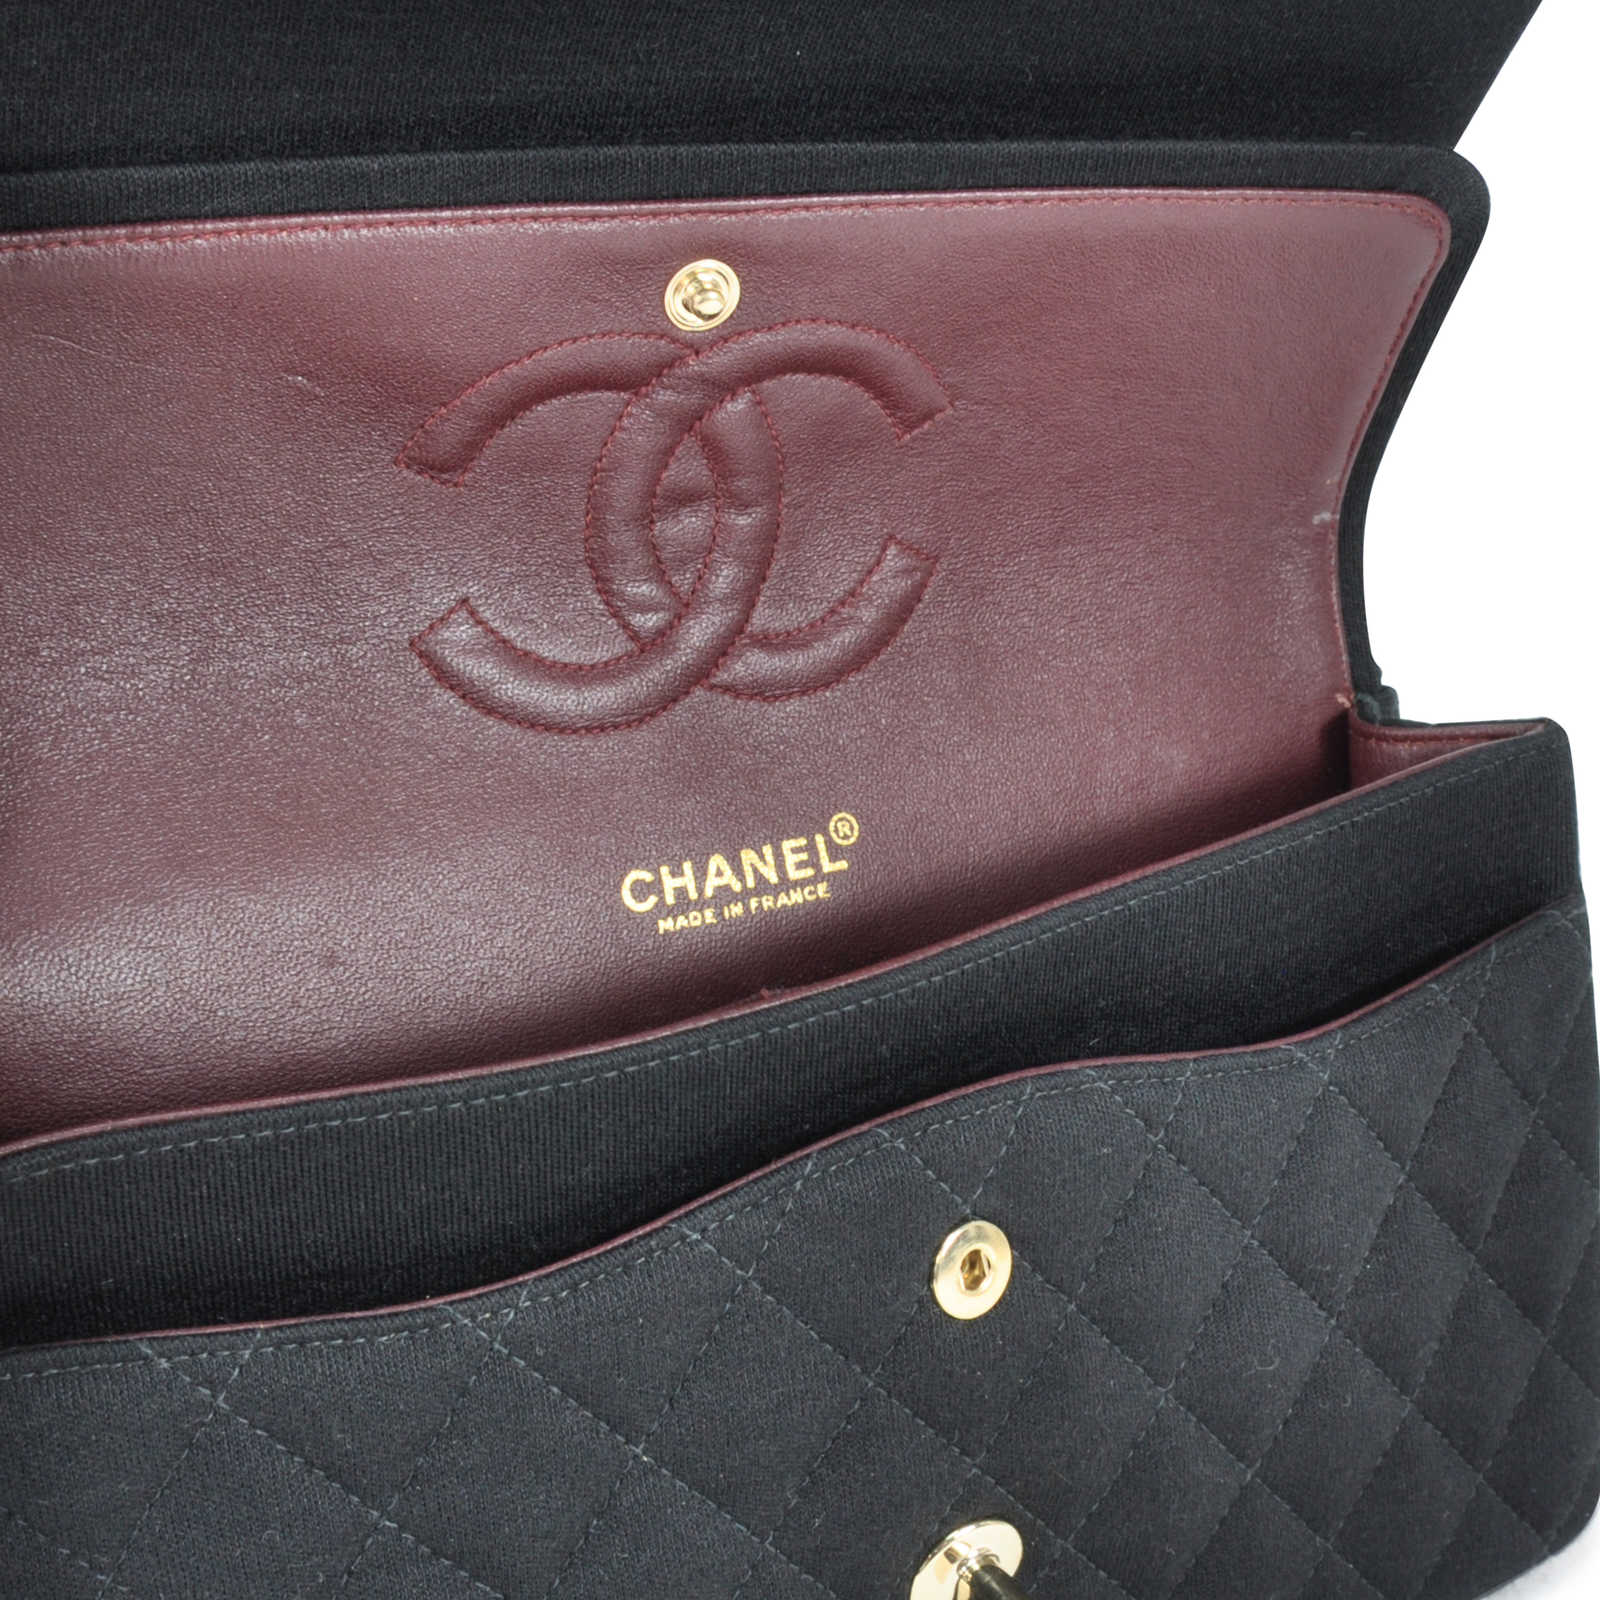 b8b16fe7786e Authentic pre owned chanel jersey classic flap bag pss jpg 1600x1600 Chanel  jersey